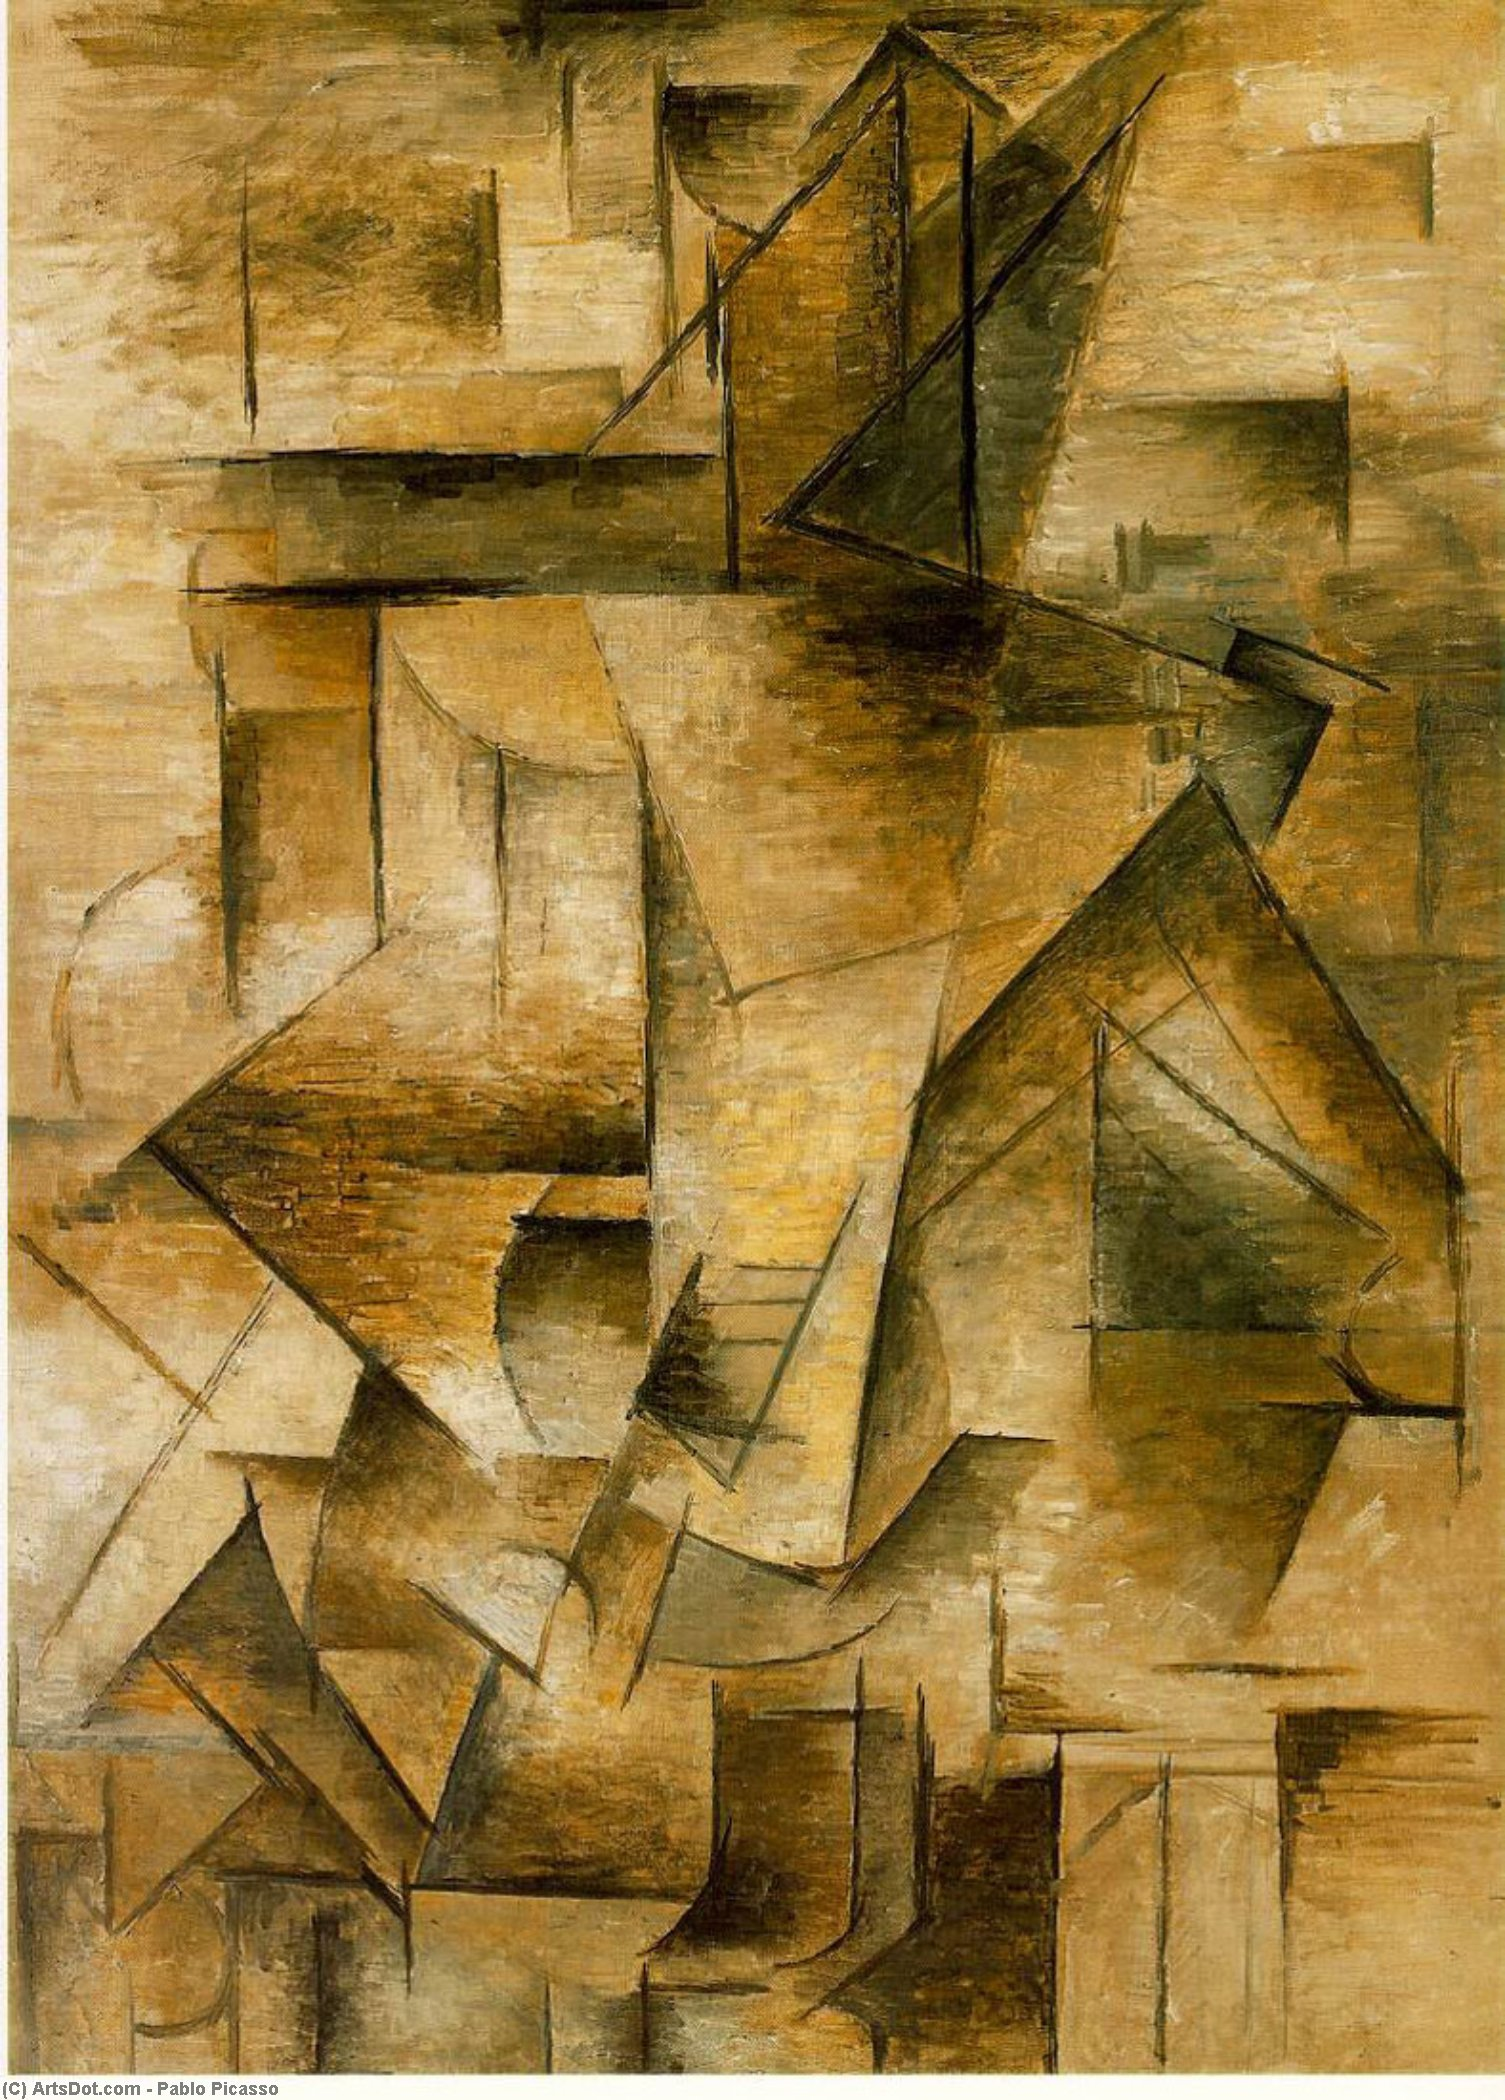 Wikioo.org - The Encyclopedia of Fine Arts - Painting, Artwork by Pablo Picasso - Guitar player